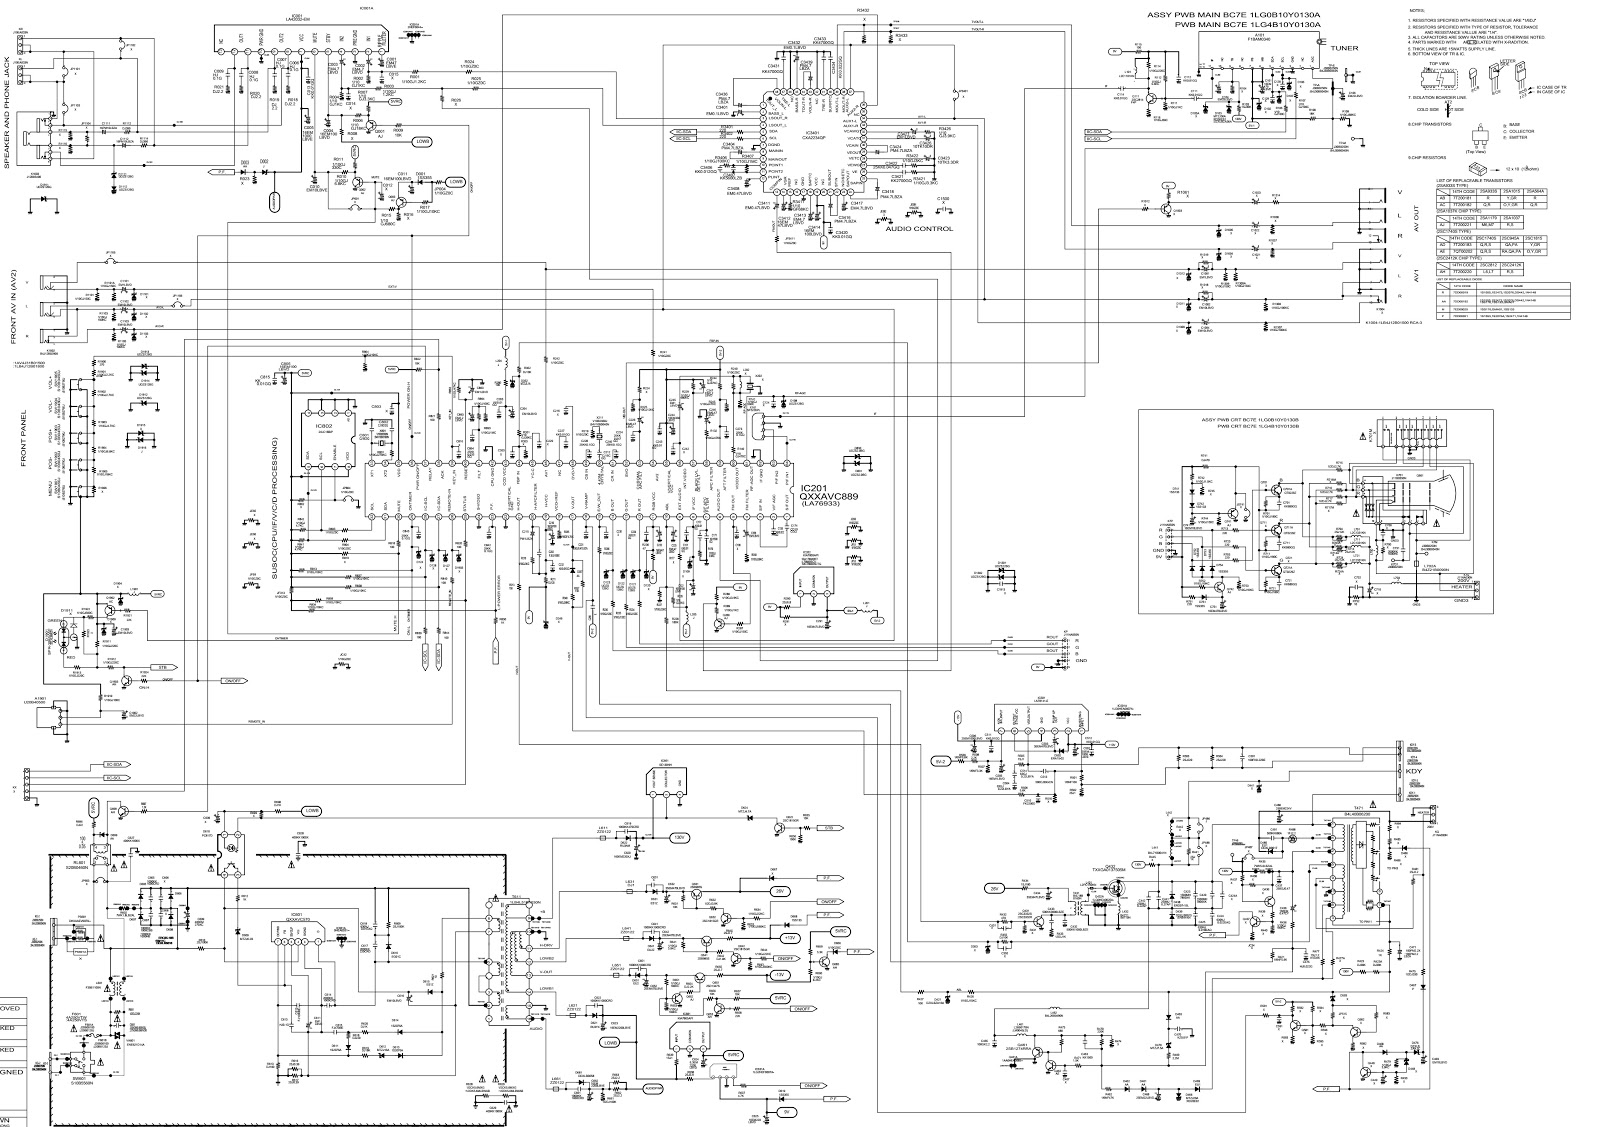 Tv Schematic Diagrams Wiring Diagram Schematics Circuits Sanyo C29lf41 Crt Circuit Jvc Full